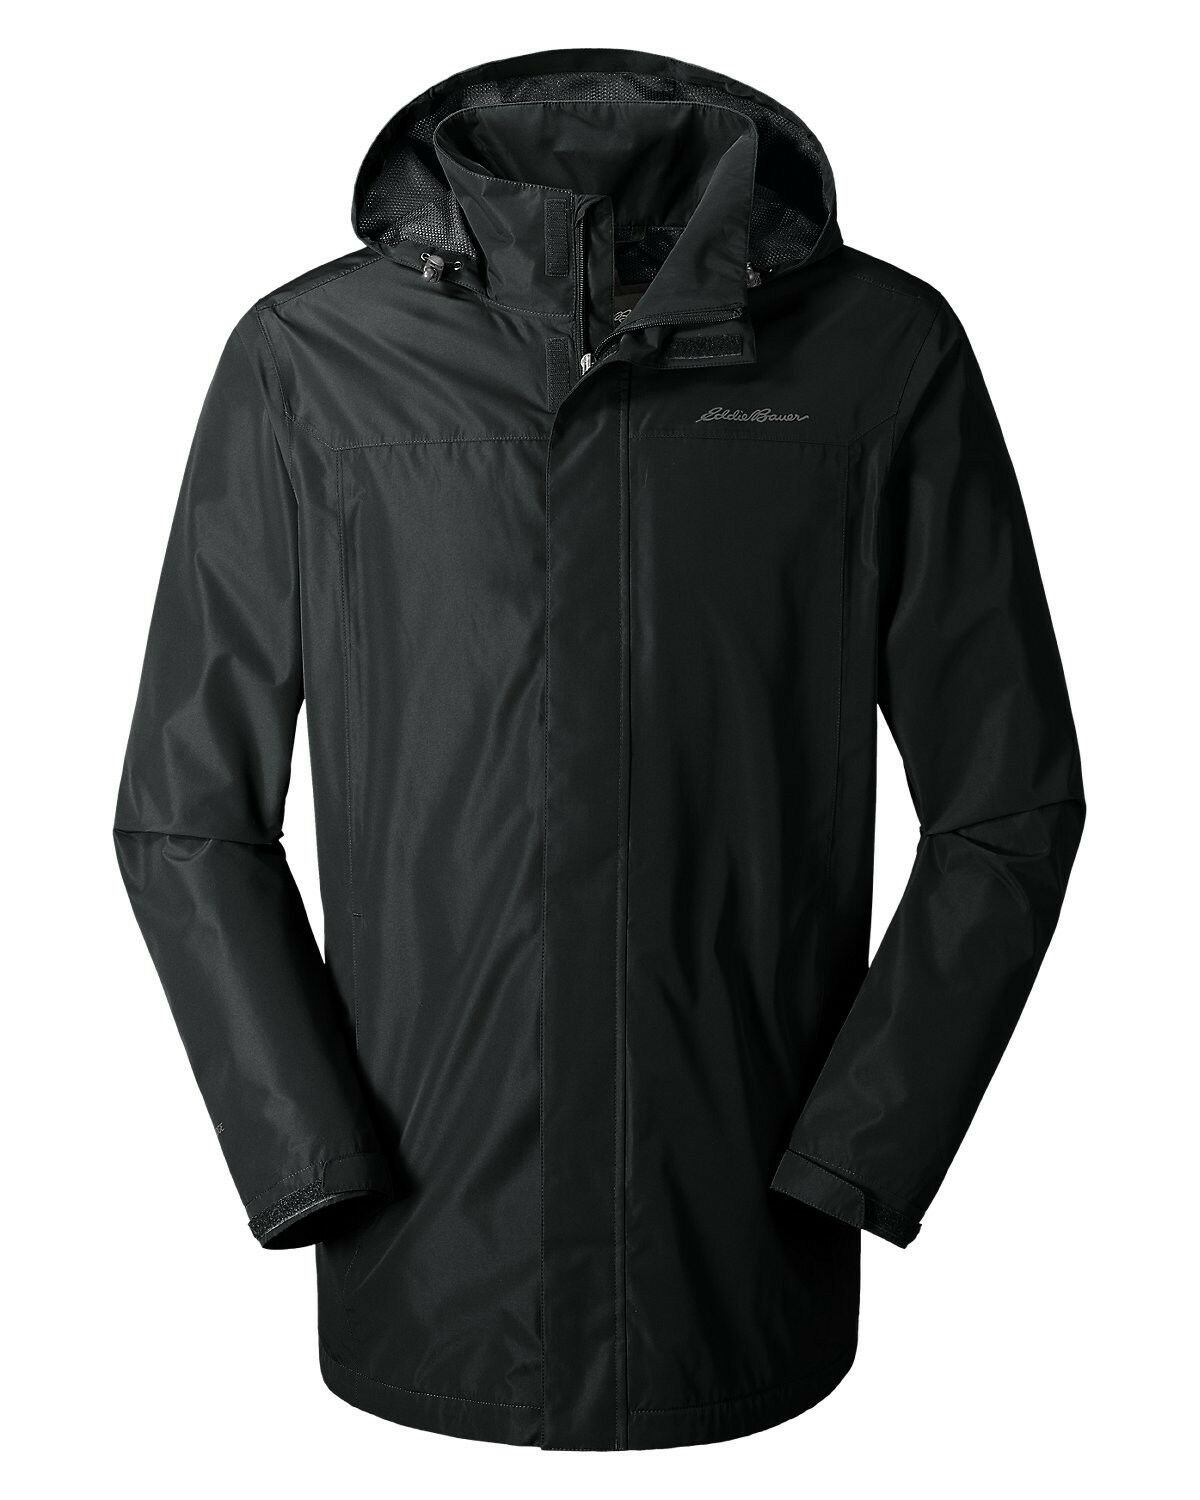 EDDIE BAUER WeatherEdge® RAINFOIL Parka